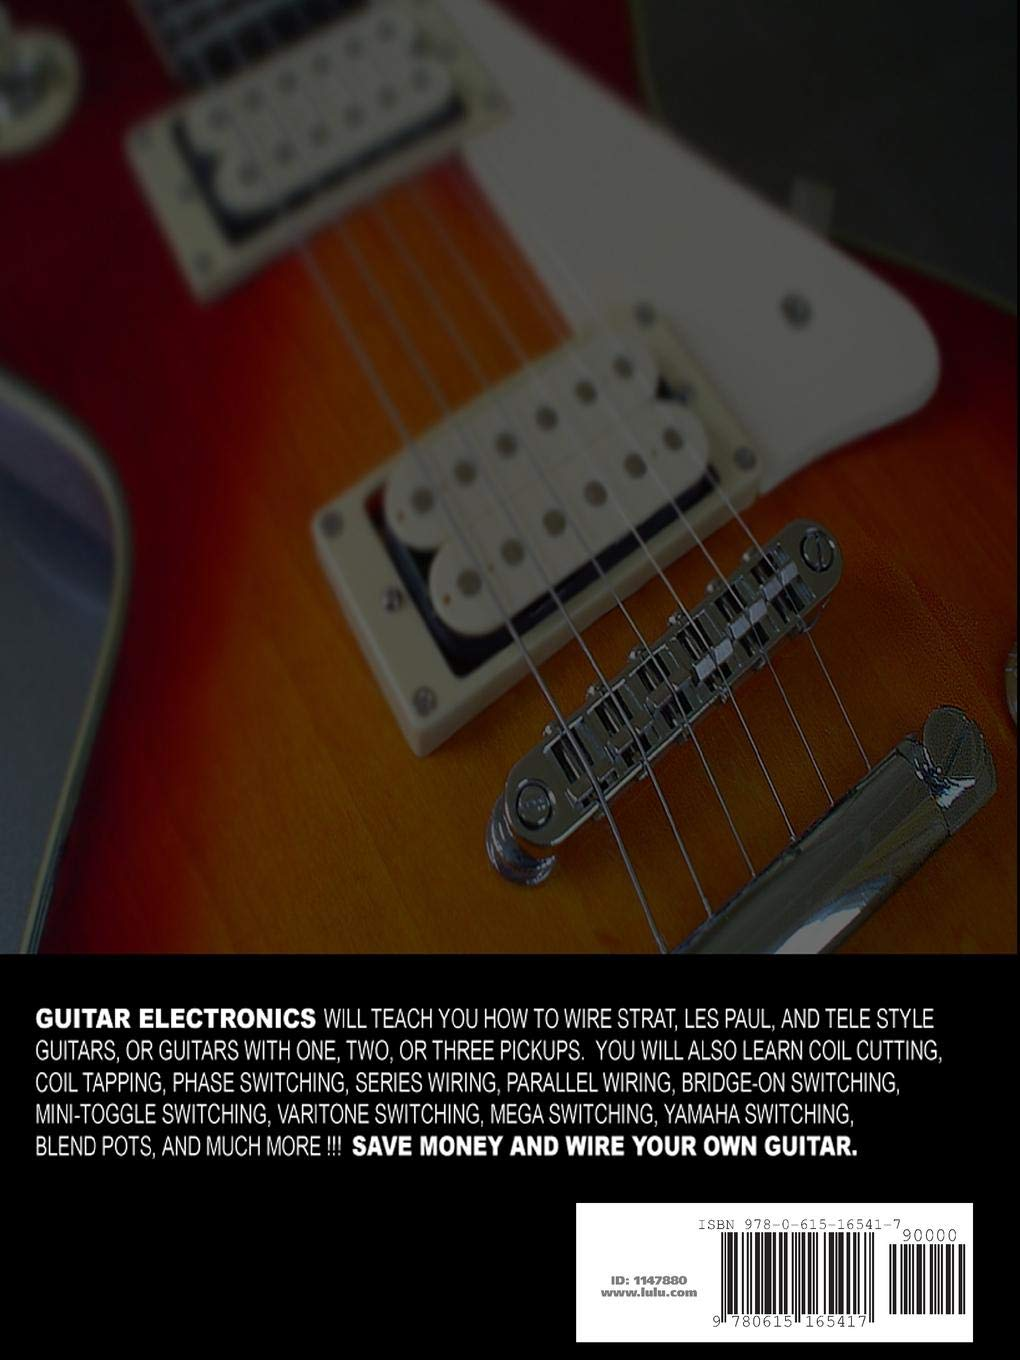 Phenomenal Guitar Electronics Understanding Wiring And Diagrams Learn Step By Wiring Digital Resources Indicompassionincorg